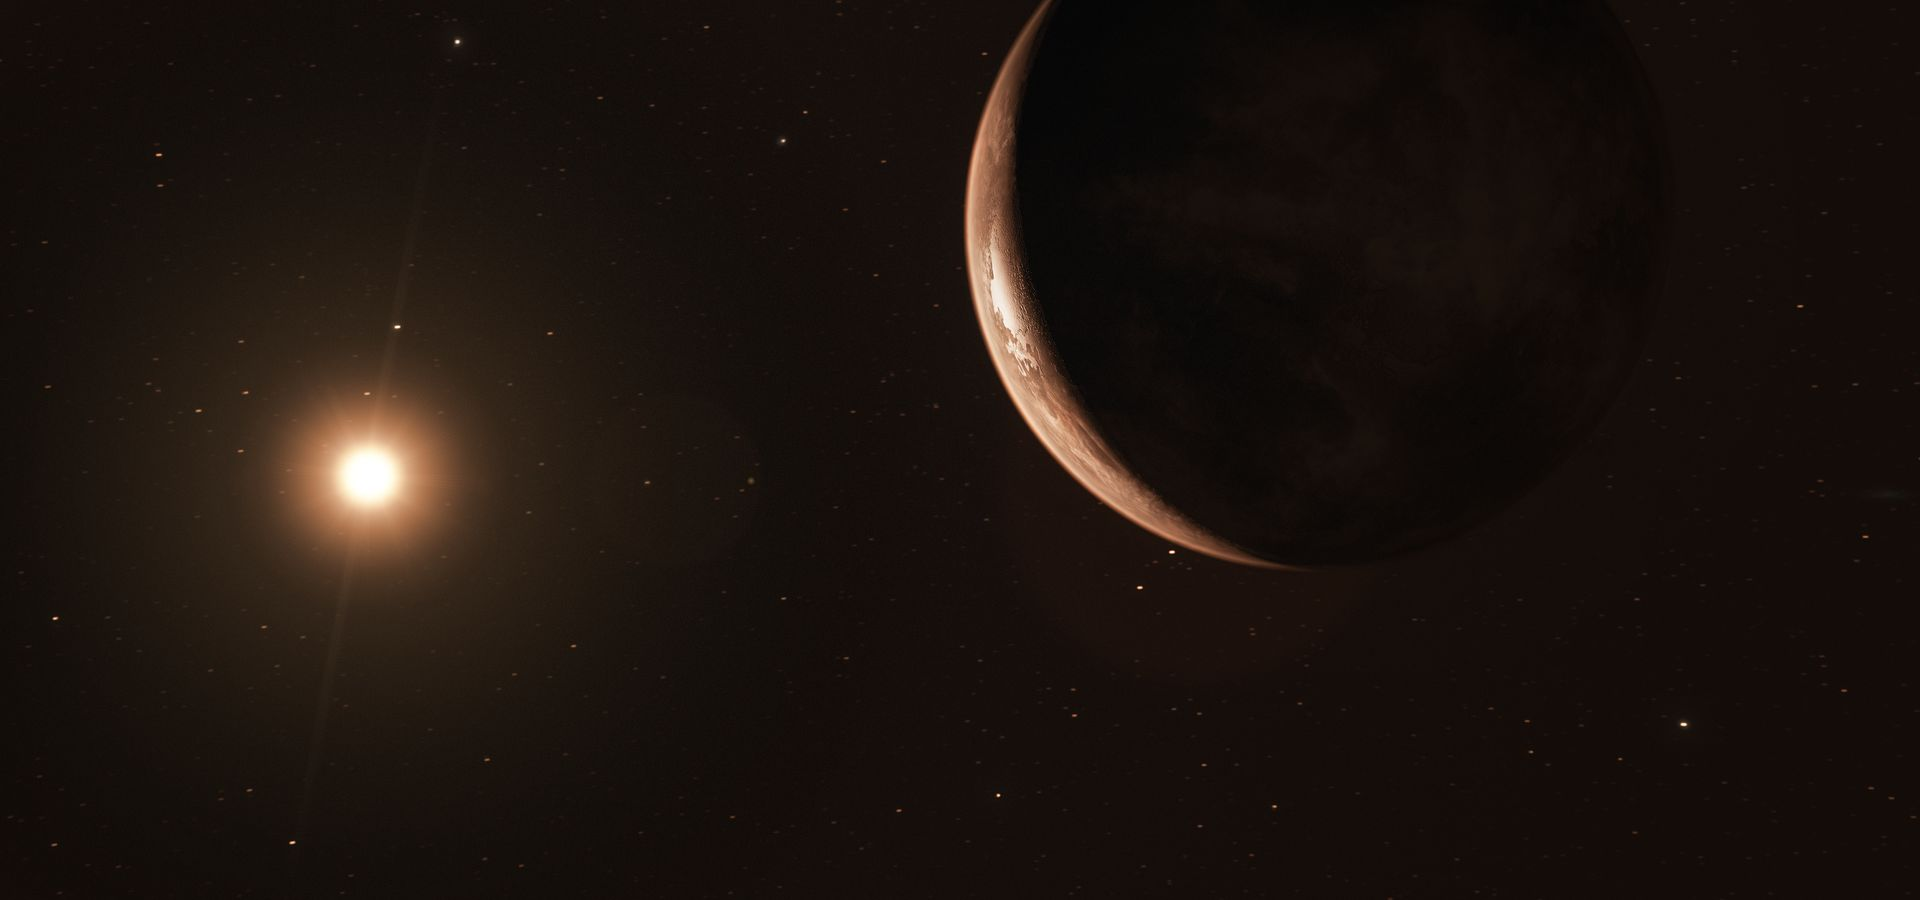 Searching for an Exoplanet